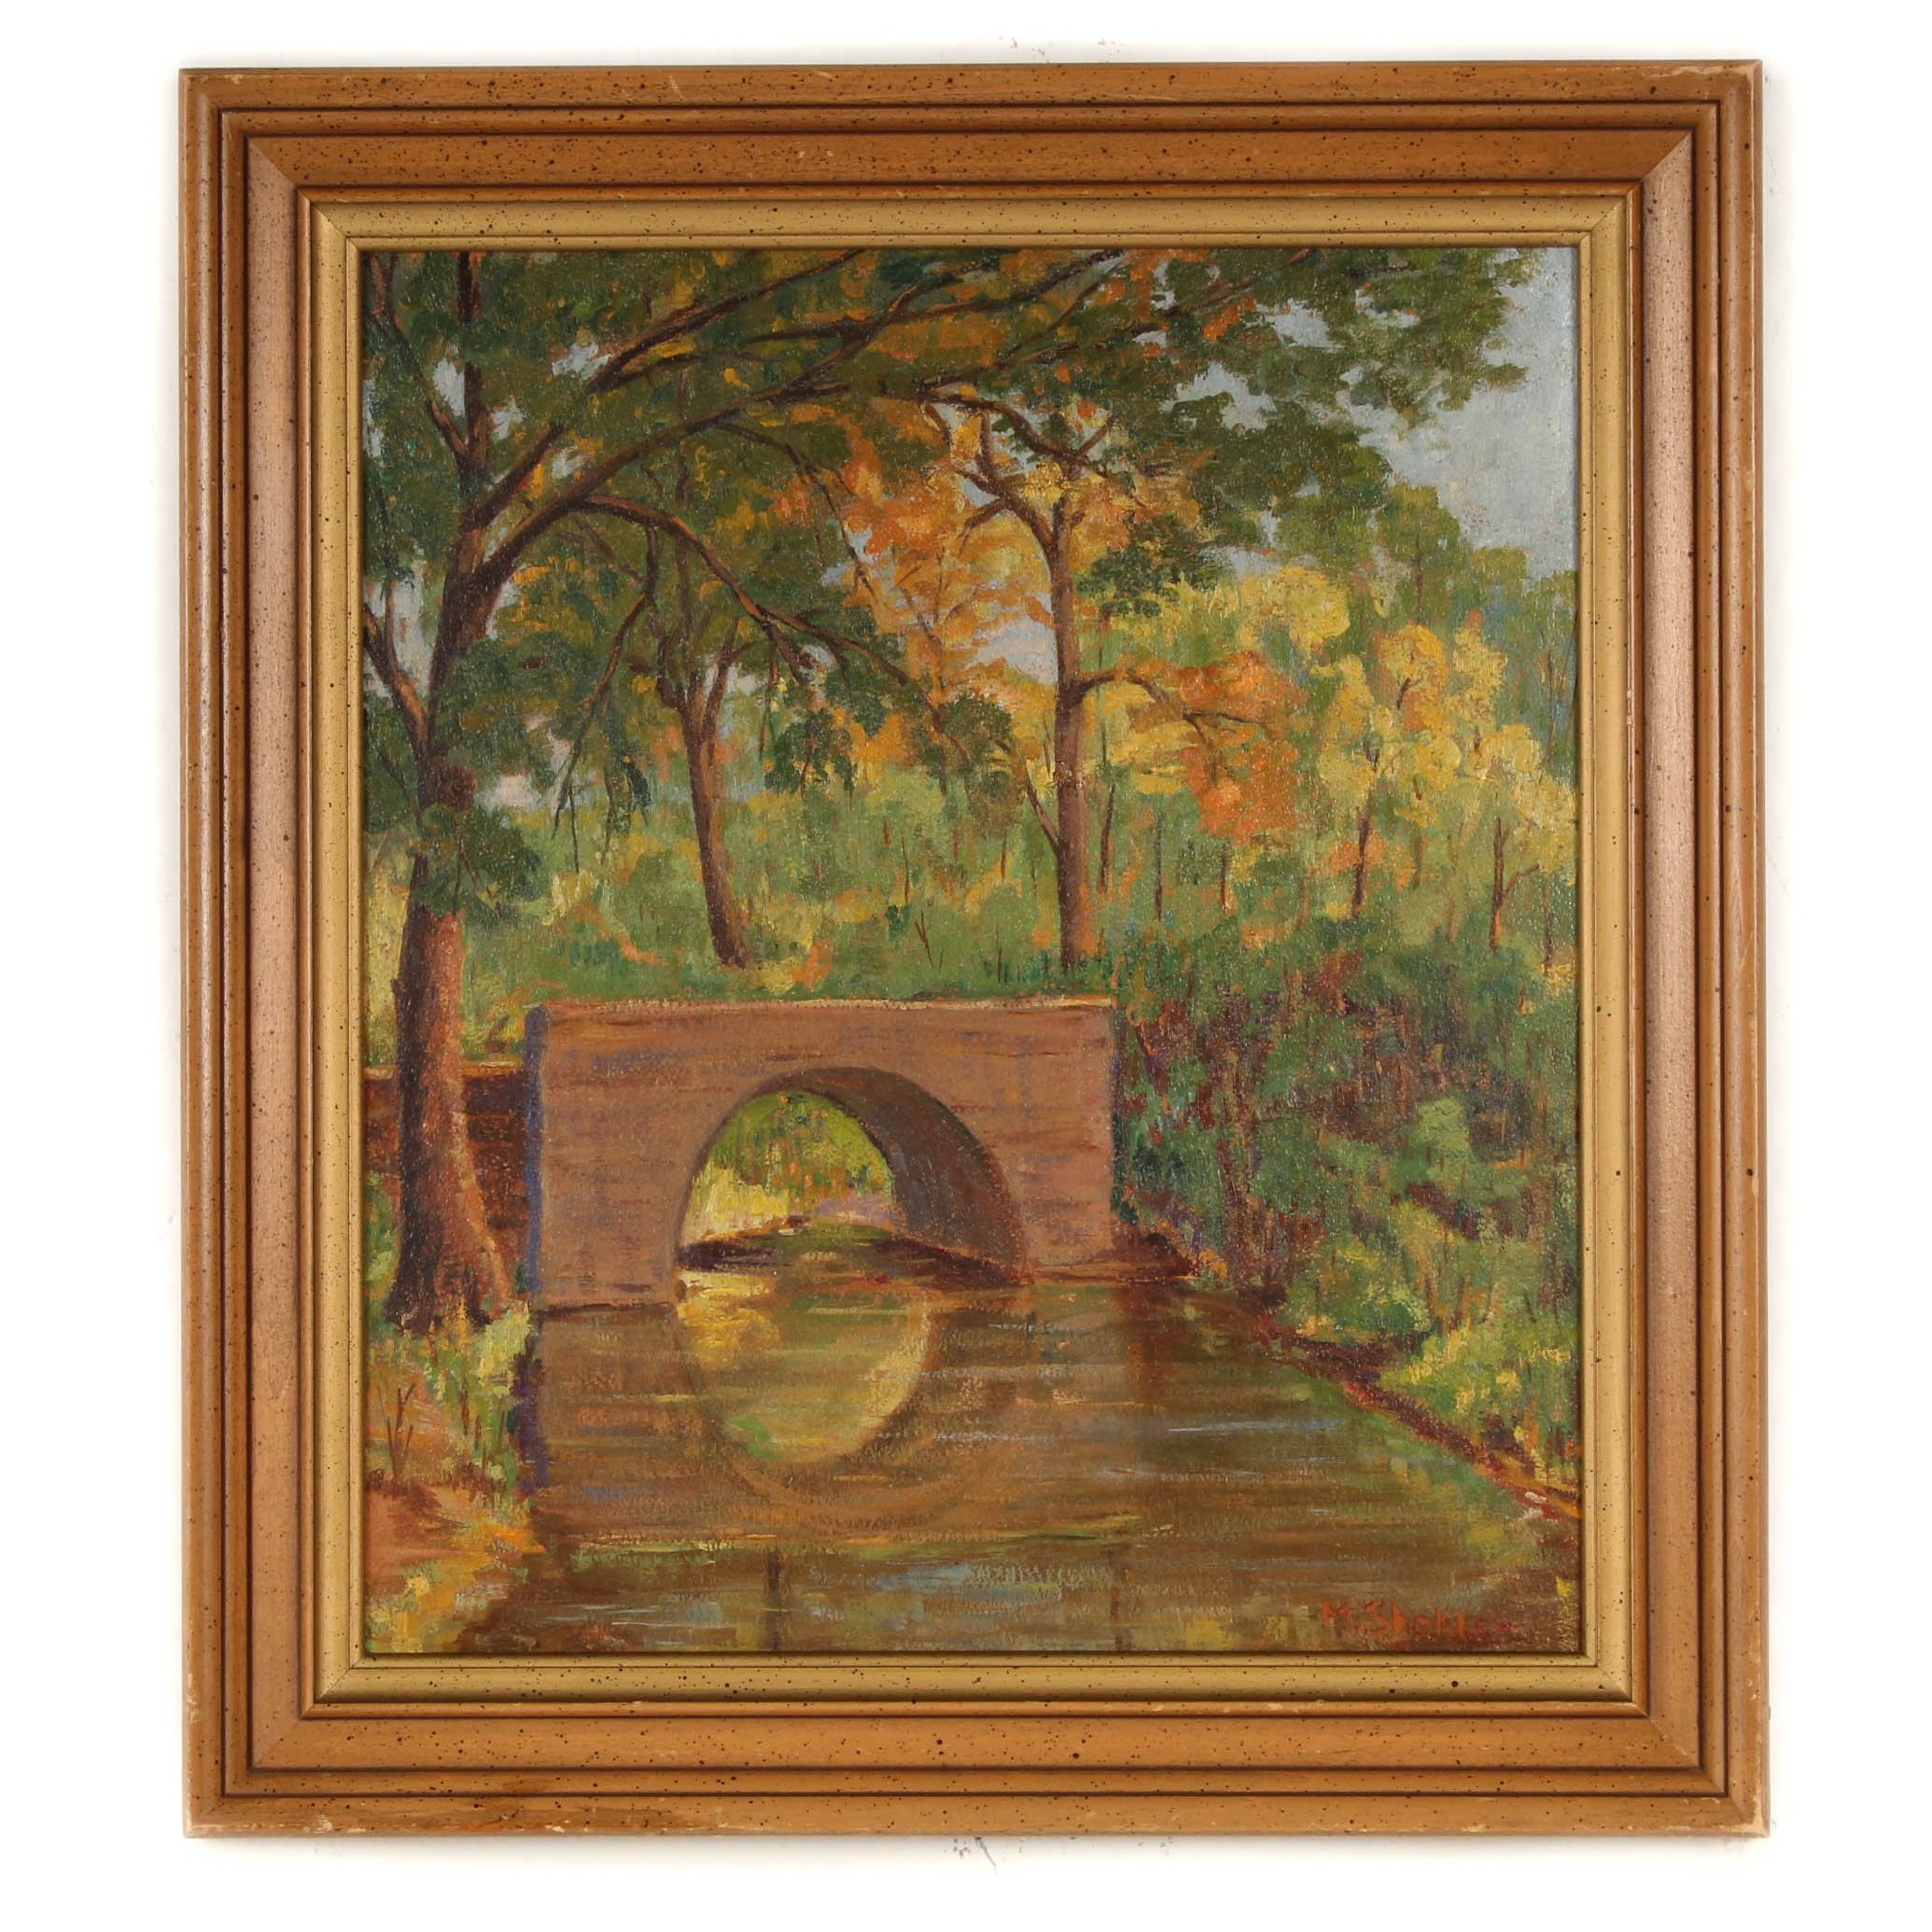 Morris Shokler Oil on Board Impressionist Landscape Painting